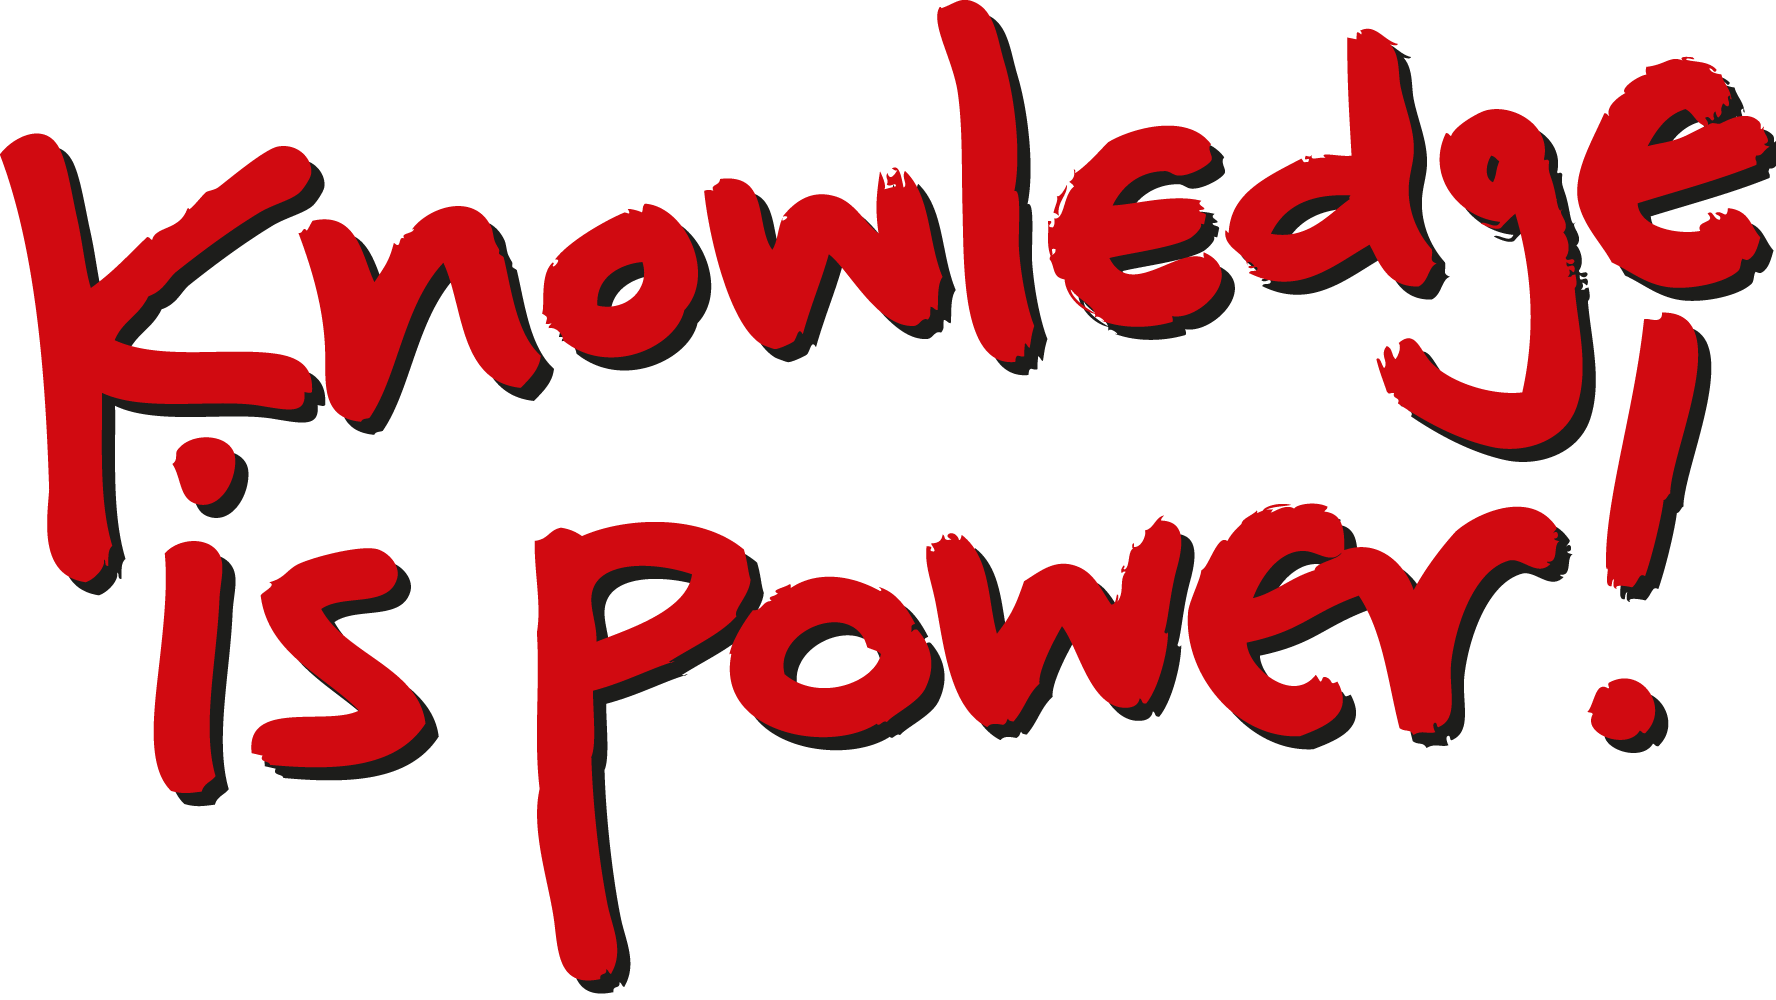 black and white Knowledge is power clipart.